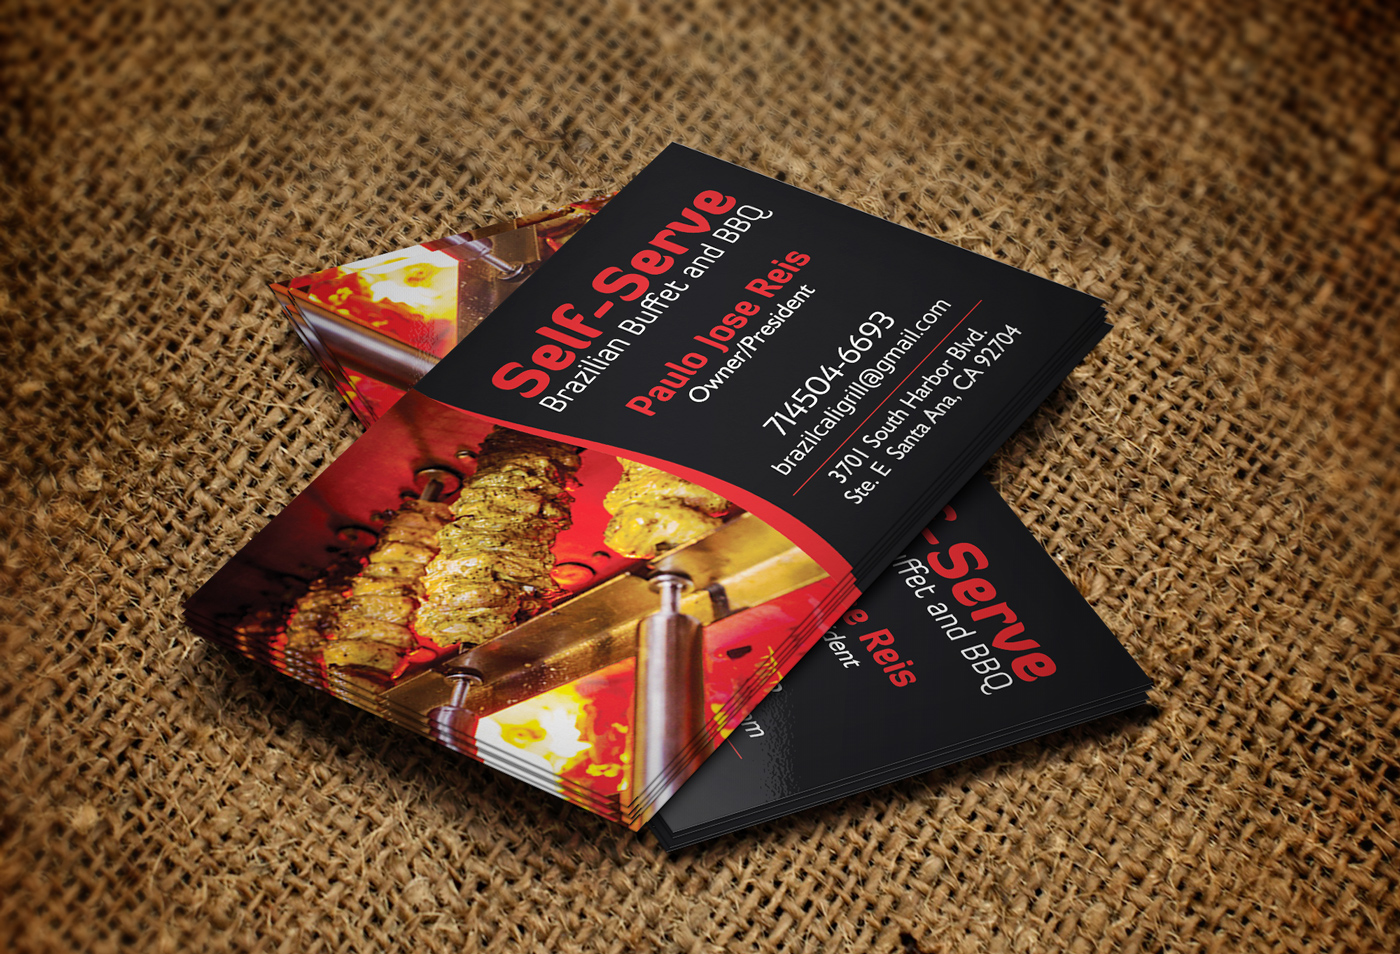 Restaurant Business Card Design Galleries for Inspiration